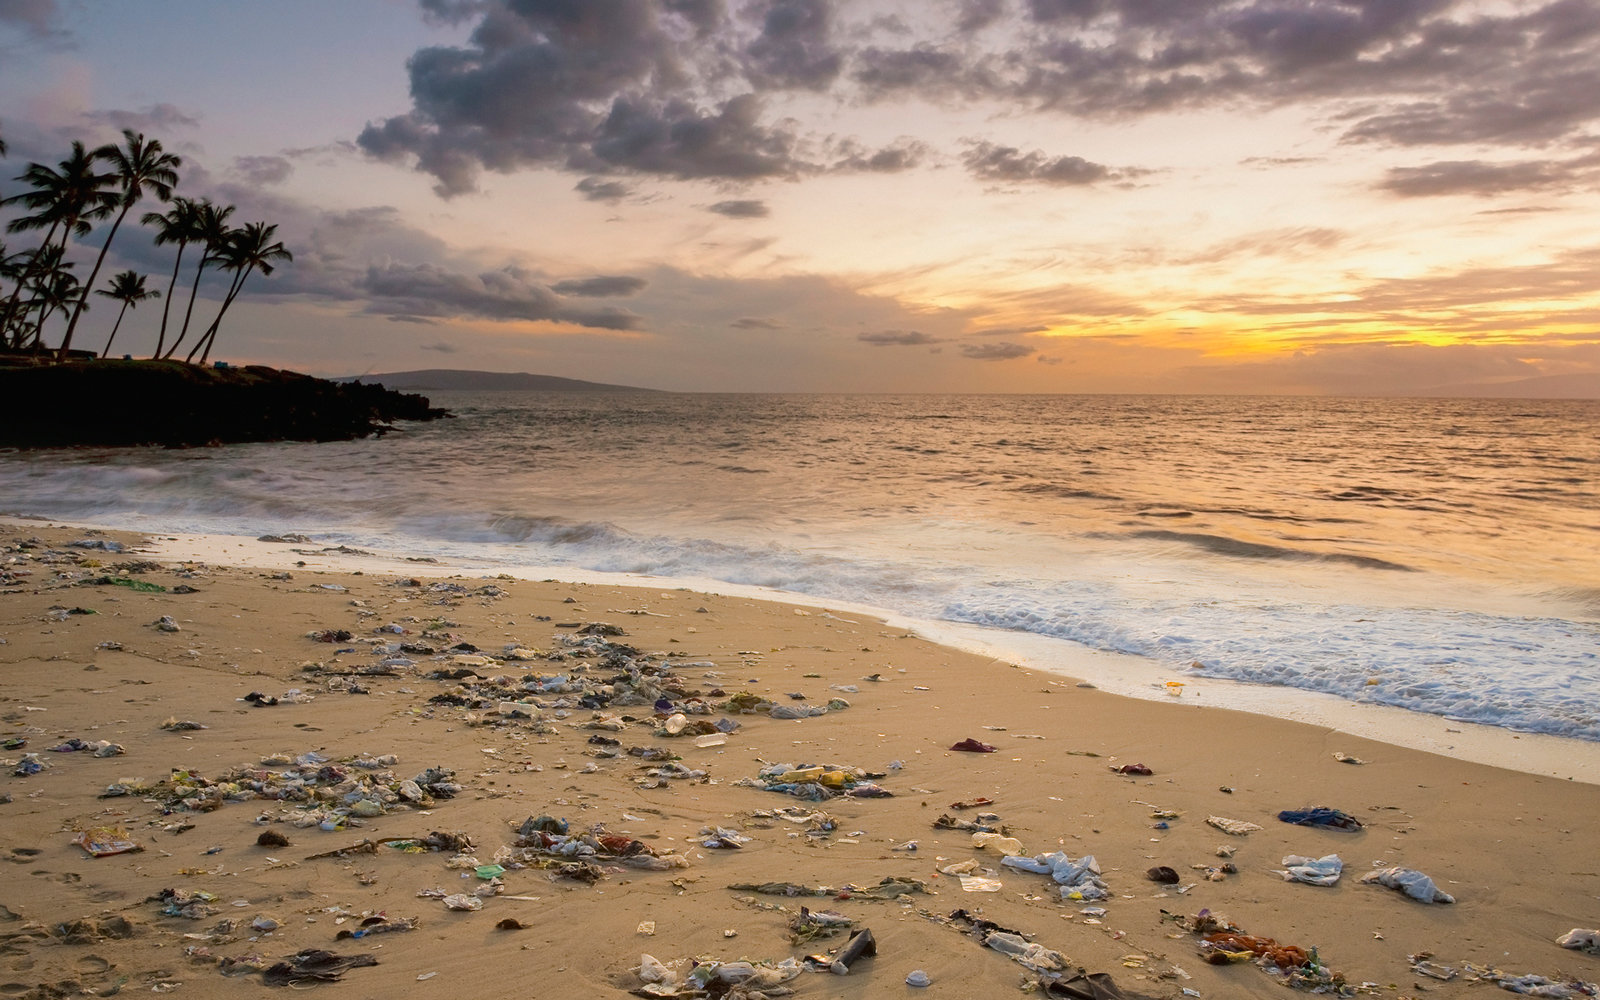 Trash Increases On Hawaii Beaches